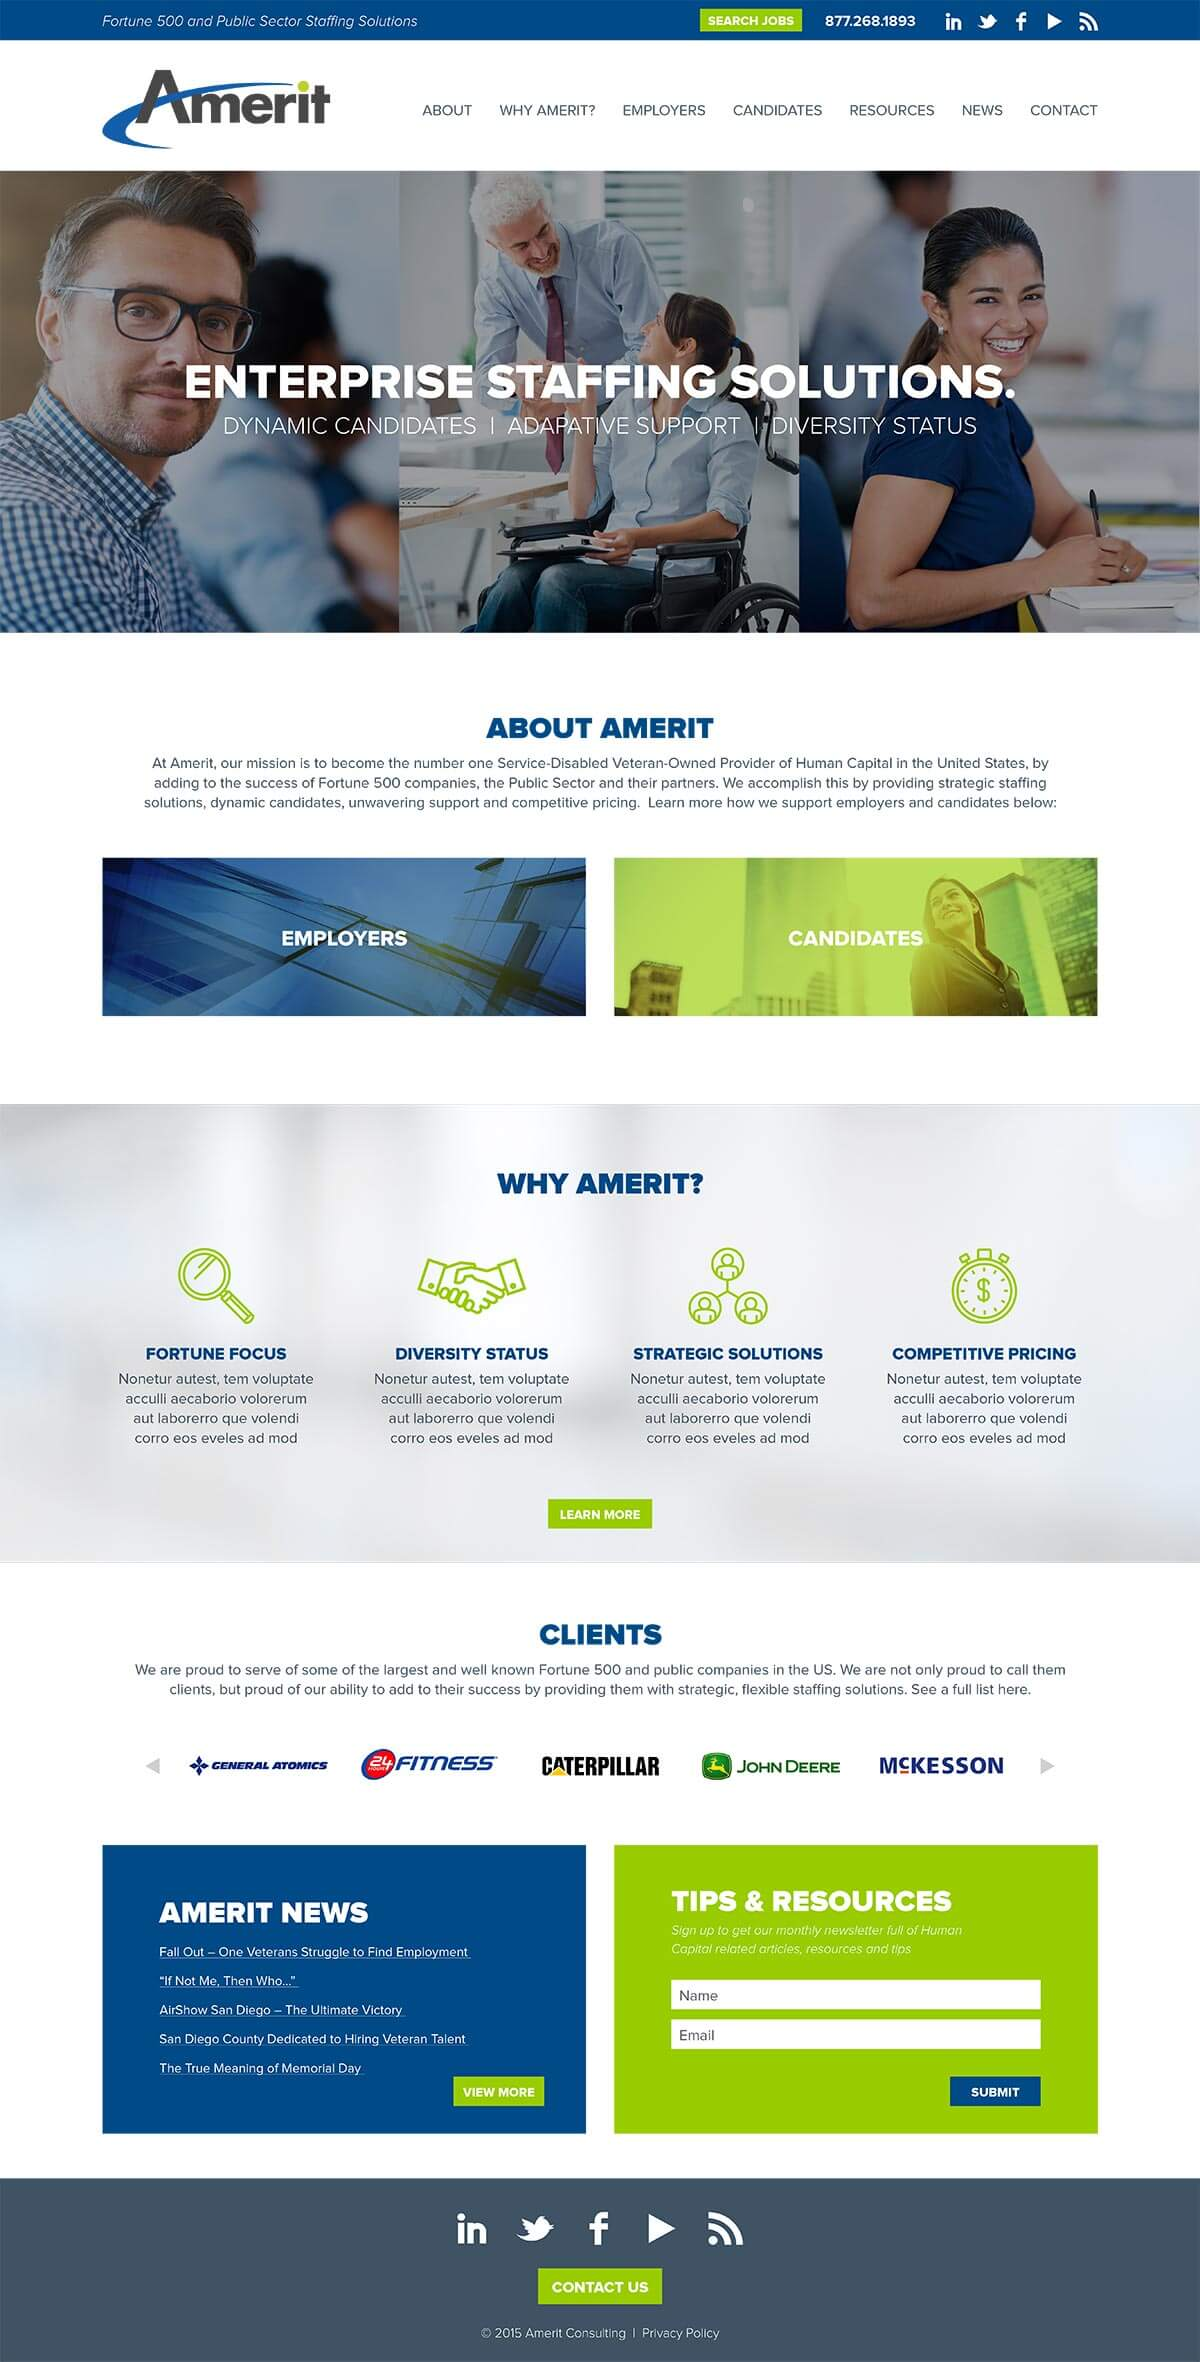 Amerit website home page v4